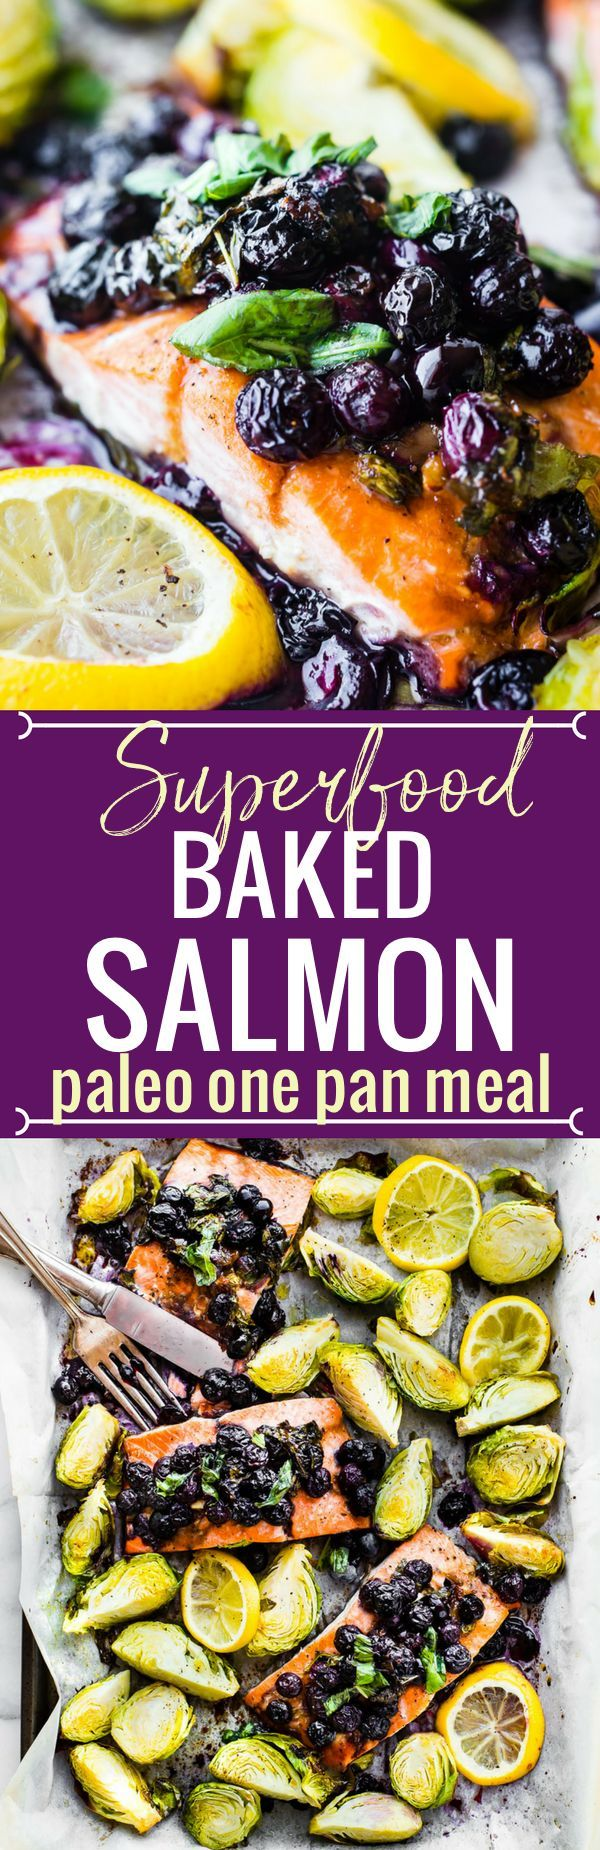 One pan Paleo SUPERFOOD Baked Salmon! This baked salmon recipe is ready in 20 minutes and packed full of nutrients. A nourishing, whole 30 friendly, flavorful meal! Salmon baked with a zippy basil blueberry balsamic topping and crispy Brüssel sprouts!   G